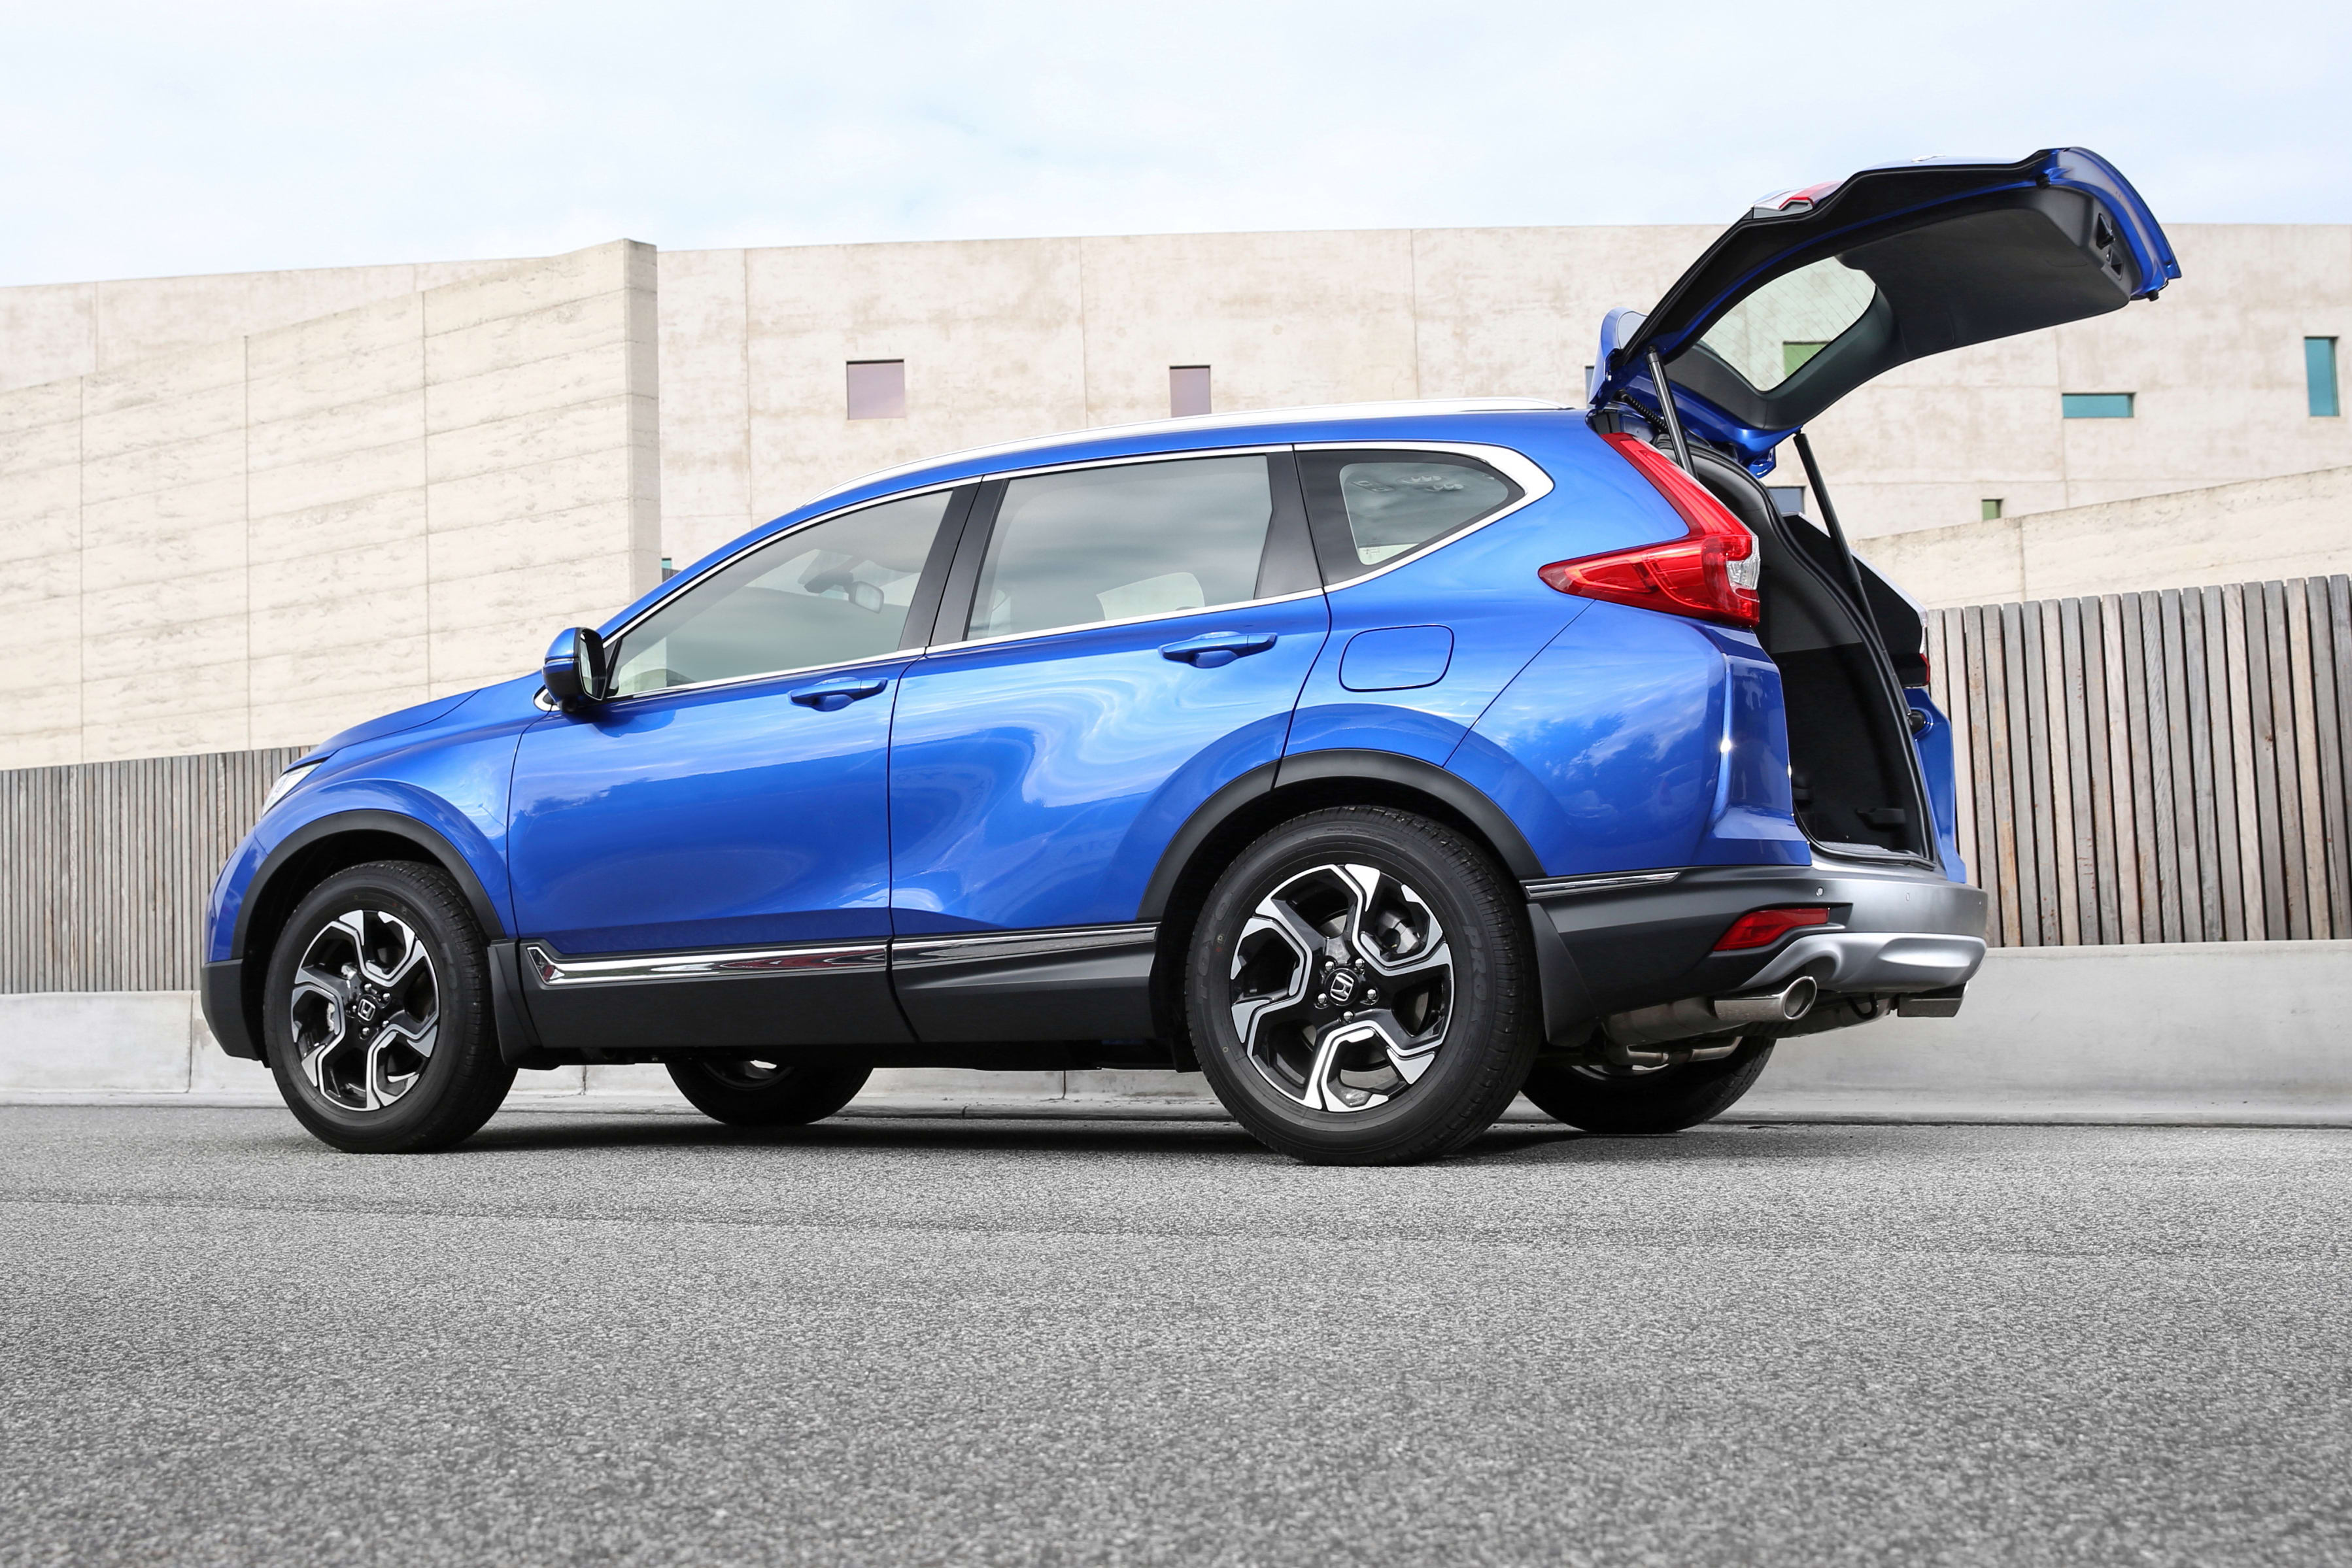 Best Value Auto >> Top 3 mid-size family SUVs for boot space - Car Advice ...